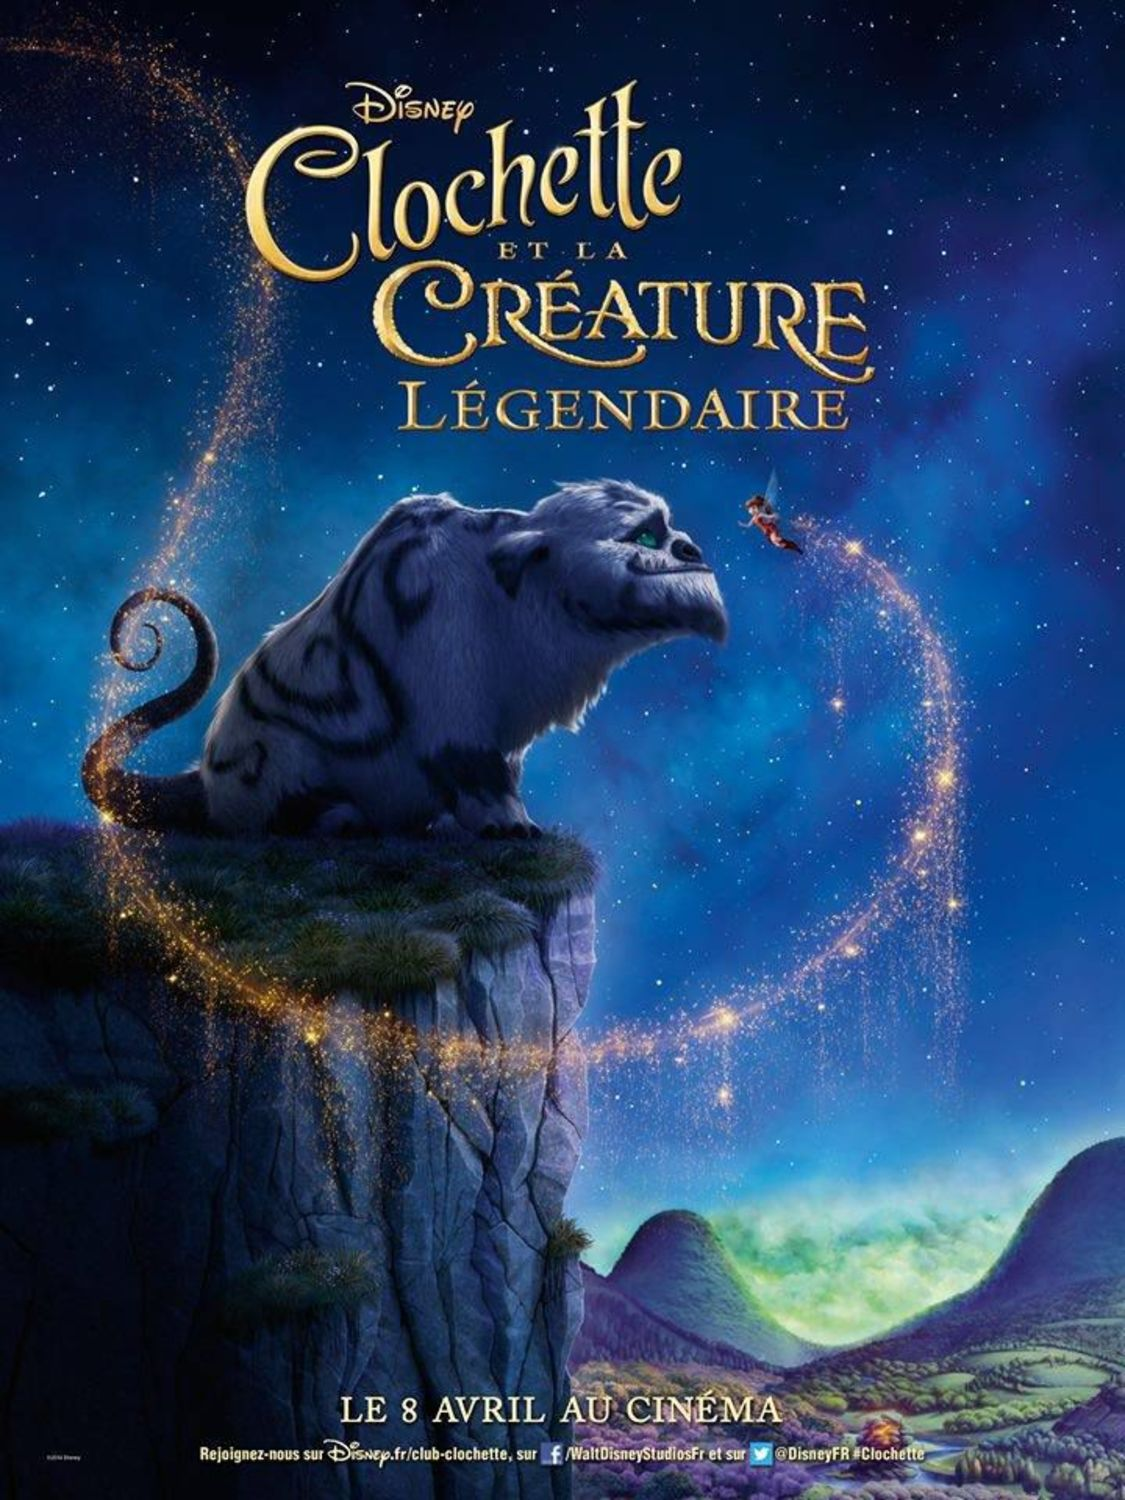 affiche poster clochette créature légendaire tinkerbell neverbeast legend disney